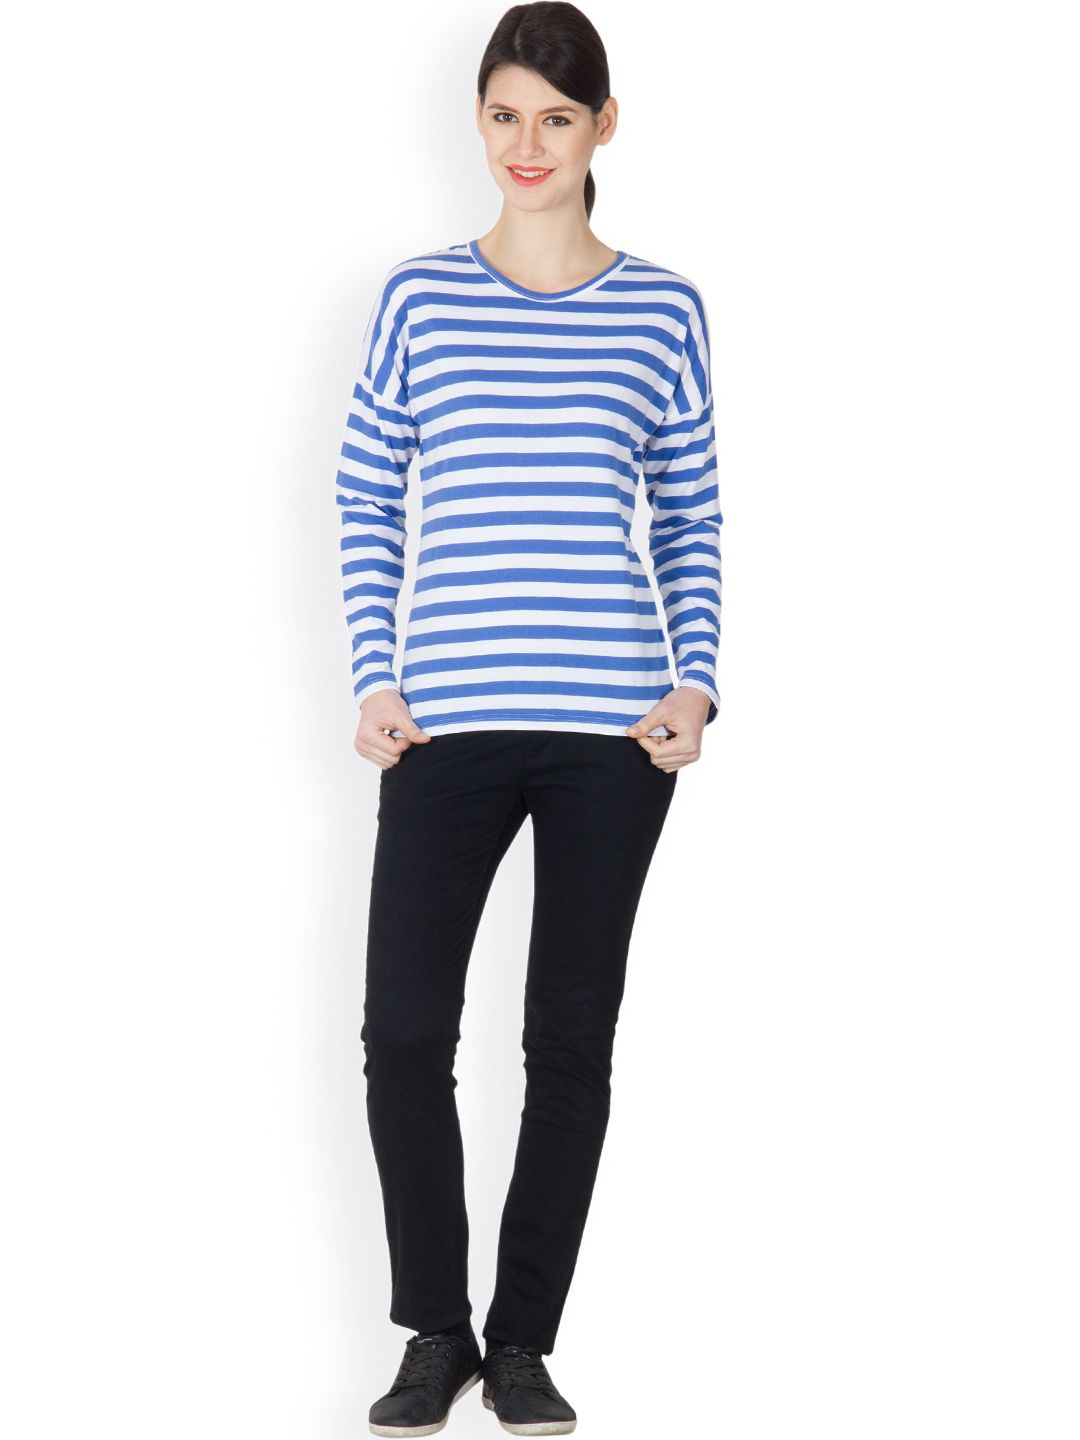 Glossy Blue Color With White Stripped Casual Round Neck Women T-Shirts For Our Western Indian Womens